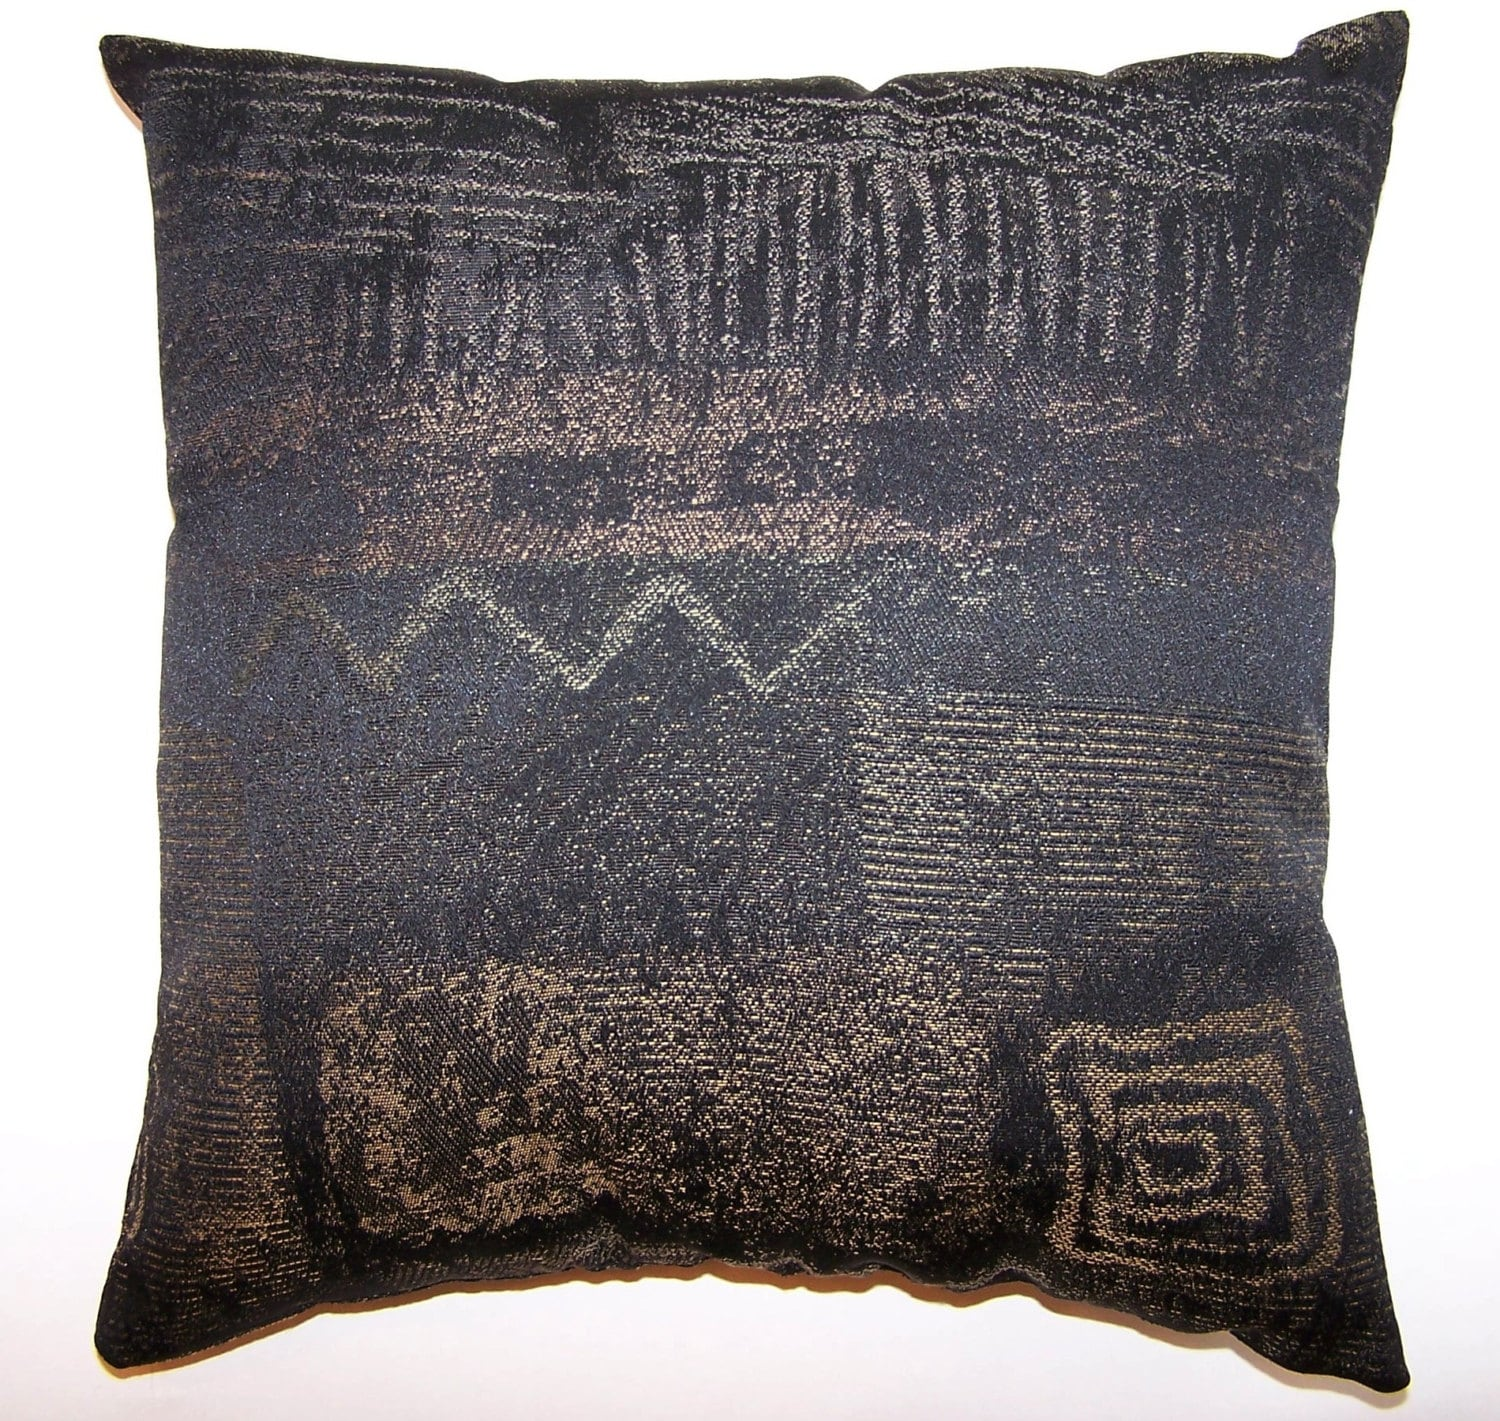 Pillows Black Charcoal Gold Decorative Pillows Throw Sofa